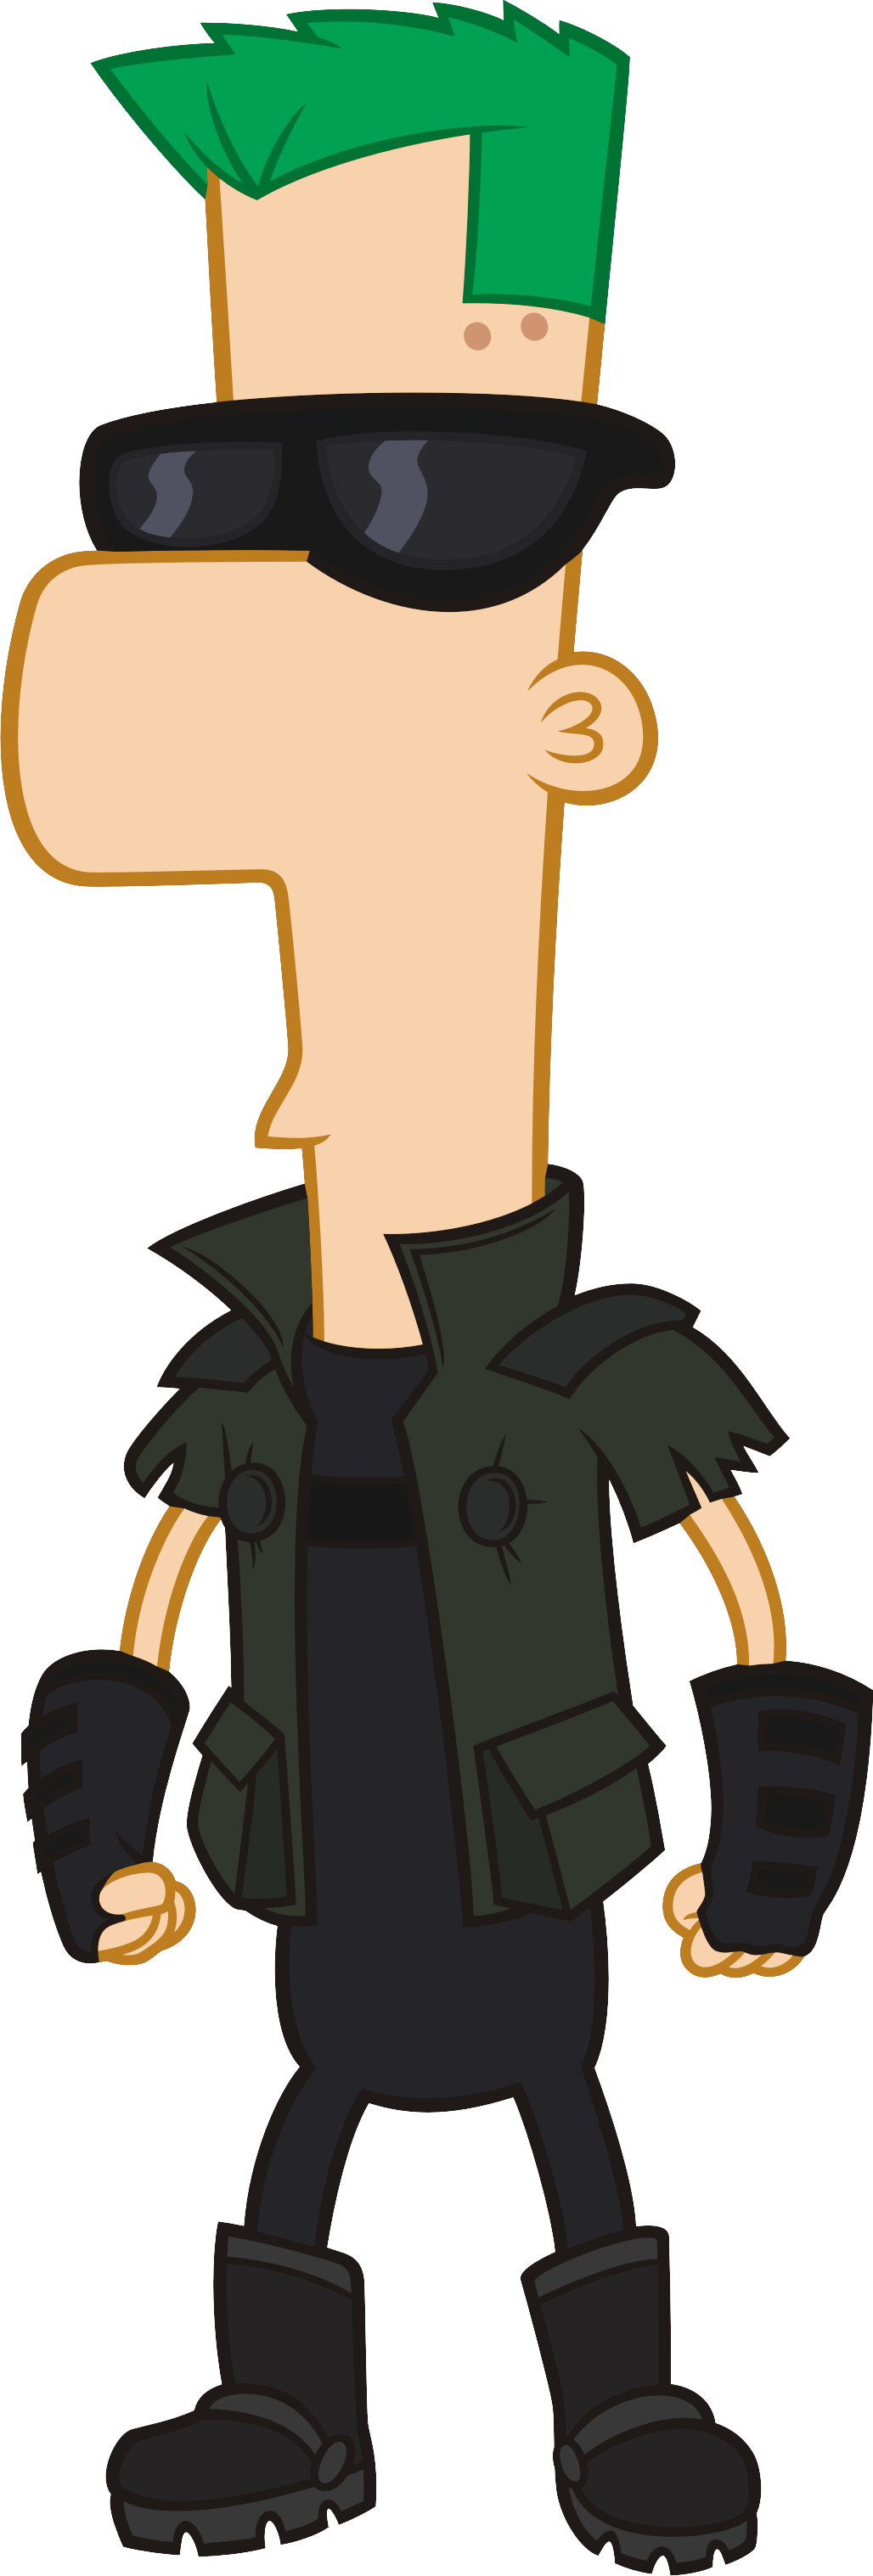 image 2nd dimension ferb fletcherpng phineas and ferb